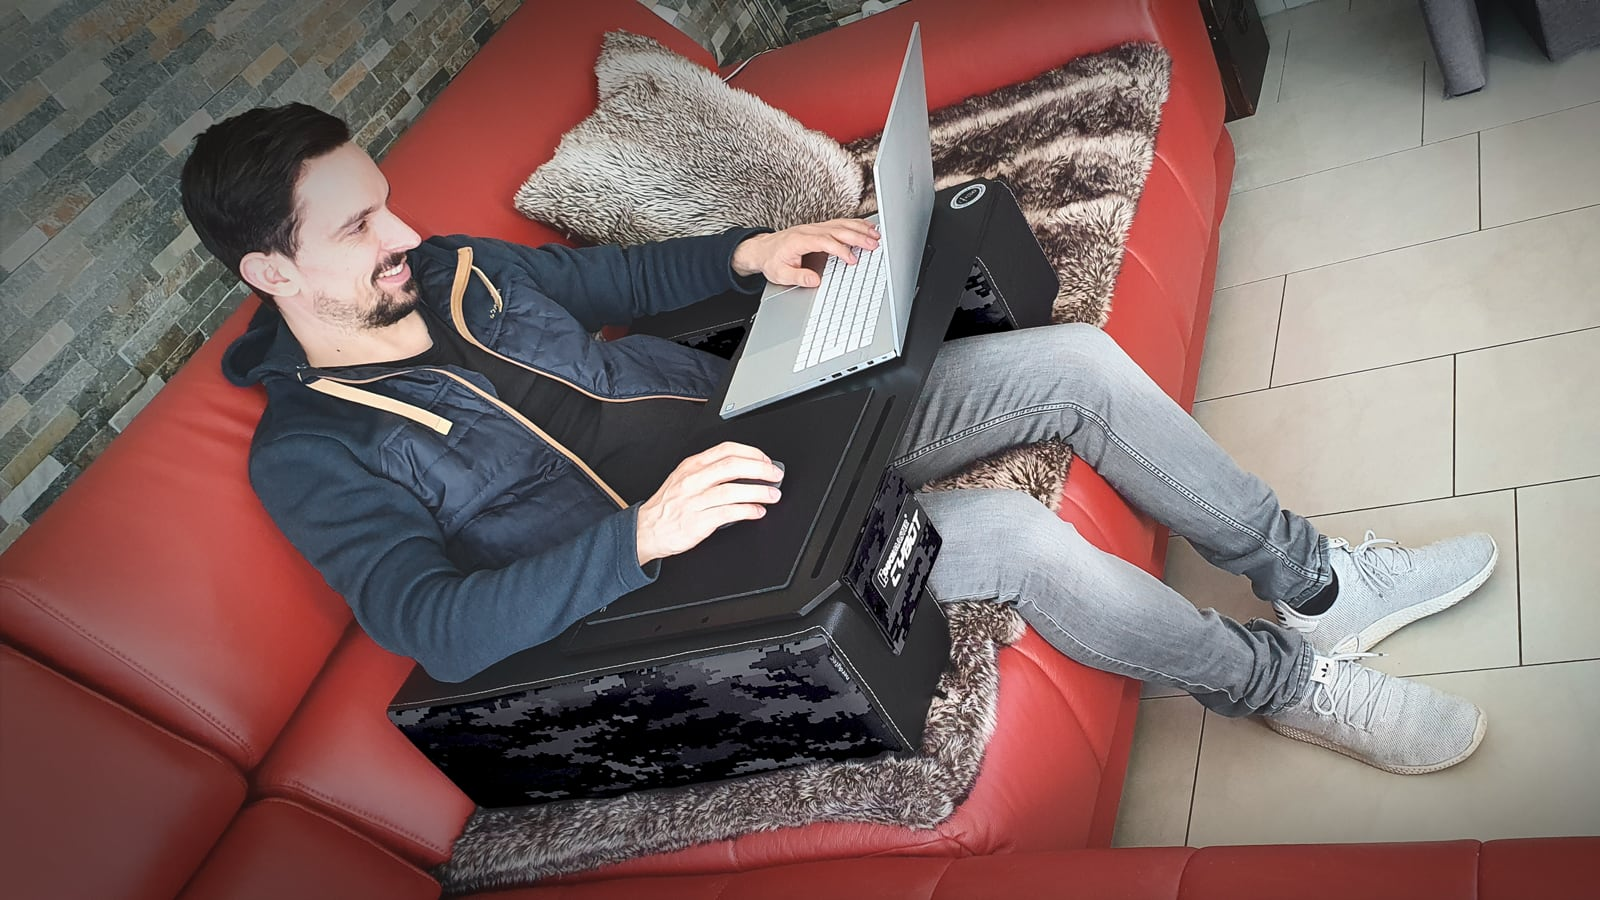 Couchmaster CYBOT Gaming Lap Desk features a special ventilation grille